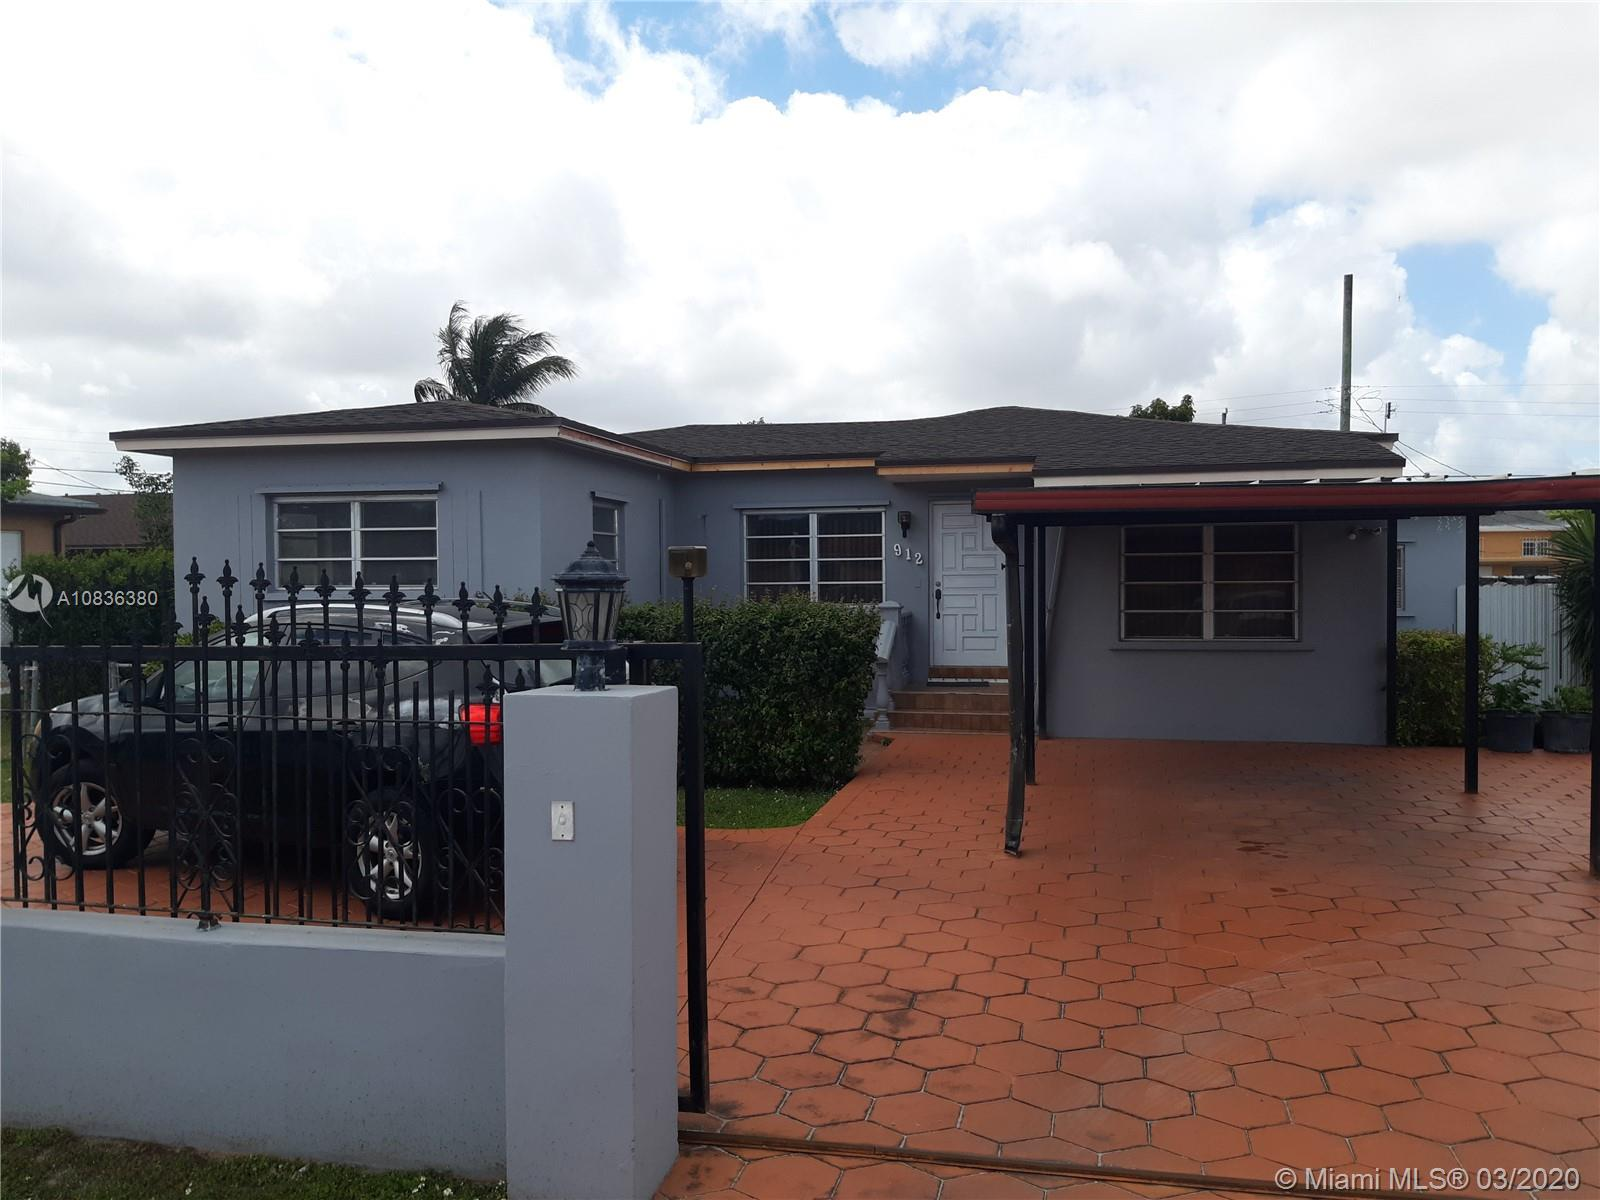 This single family home is centrally located next to the Palmetto Expressway and SW 8th ST, features a New Roof, One year old A/C and recently updated Kitchen and Baths. There is 1 bedroom/1 bath with a separate entrance (currently leased). The property has an exterior laundry room, fenced backyard and gated circular driveway with space for up to 4 cars, as well as additional spaces for parking in the front, next to the Avenue. Easy access to the 826 and 836 Expressways and Miami International Airport is only 10 minutes away.